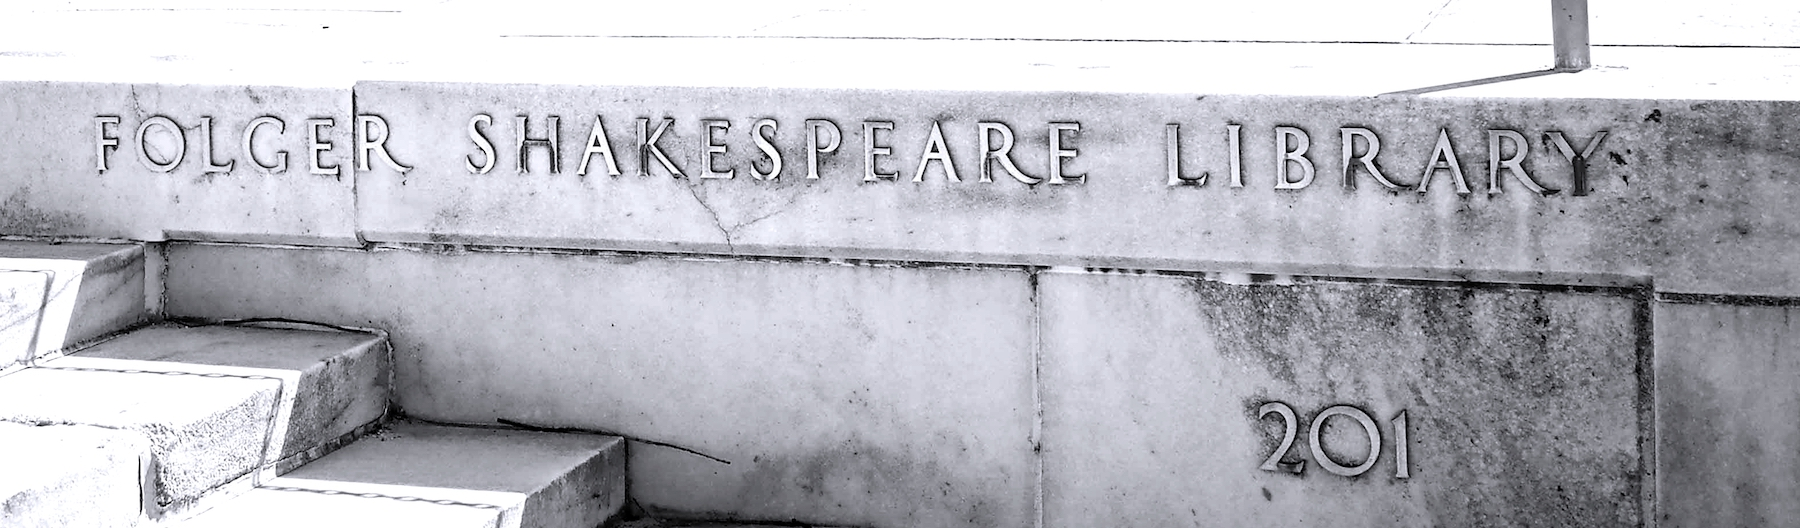 An image of the Folger Shakespeare Library name emblazoned on stone steps